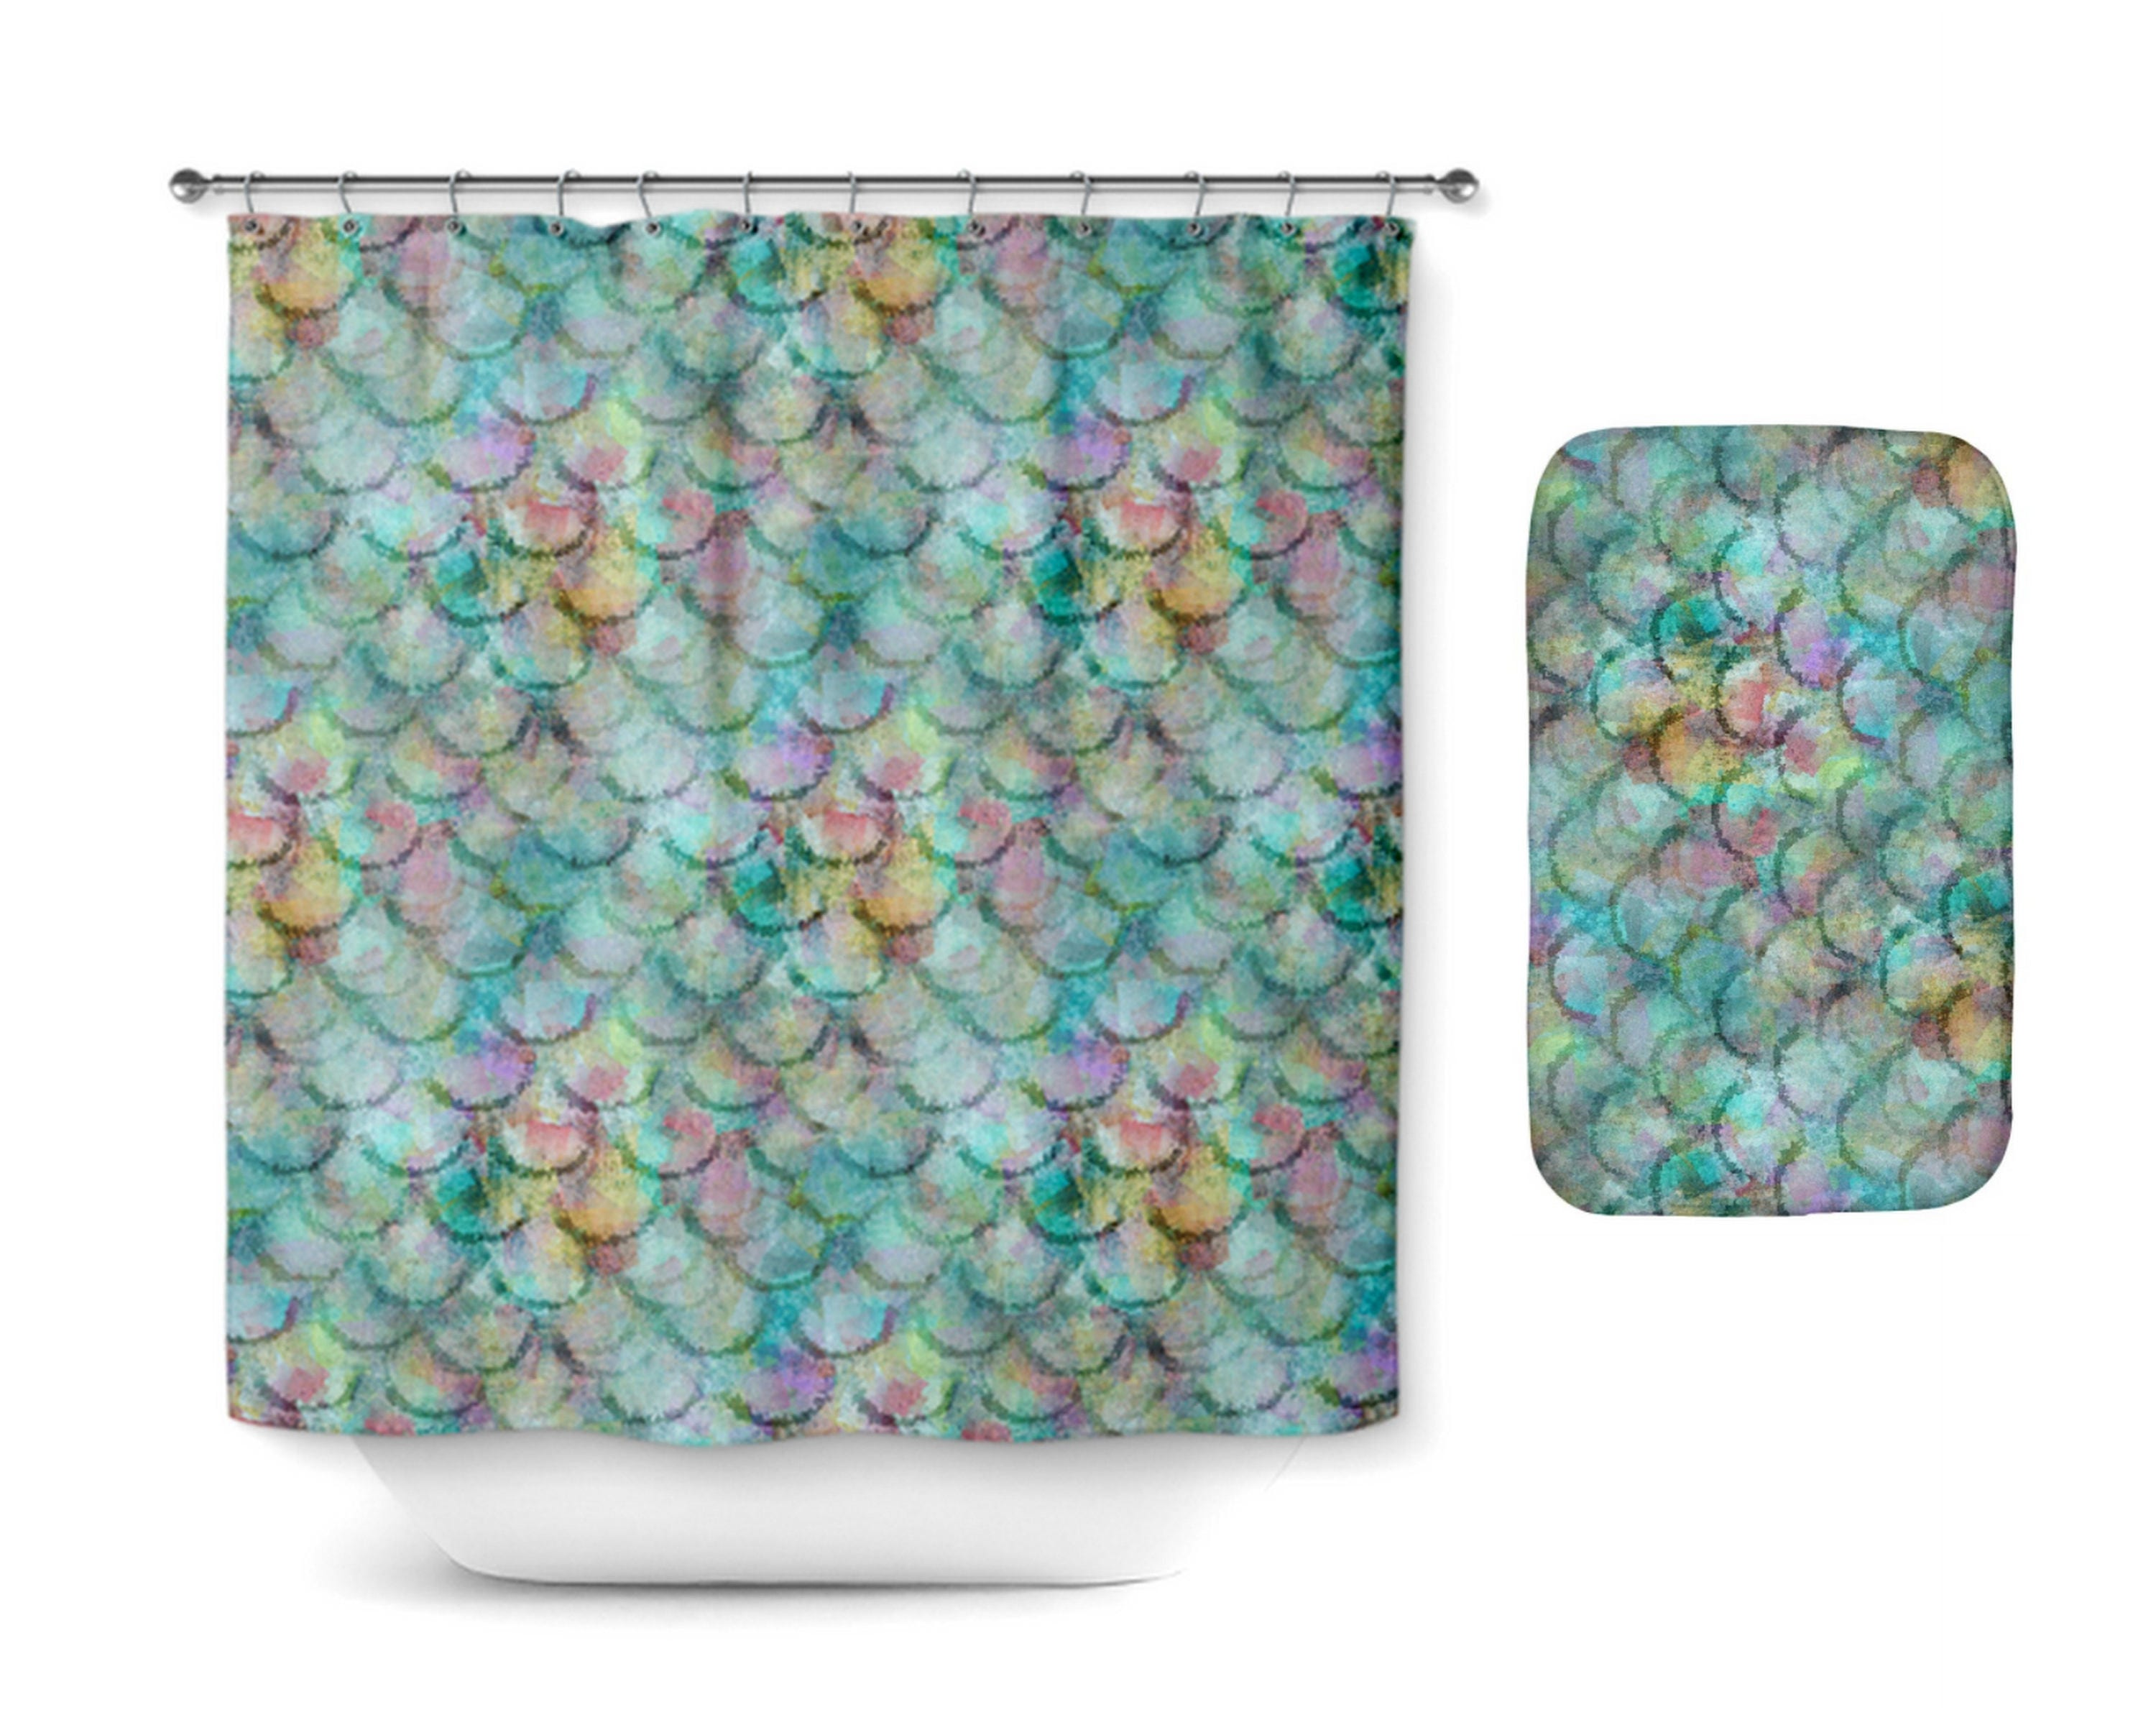 Shower Curtain Etsy - Mint green shower curtain